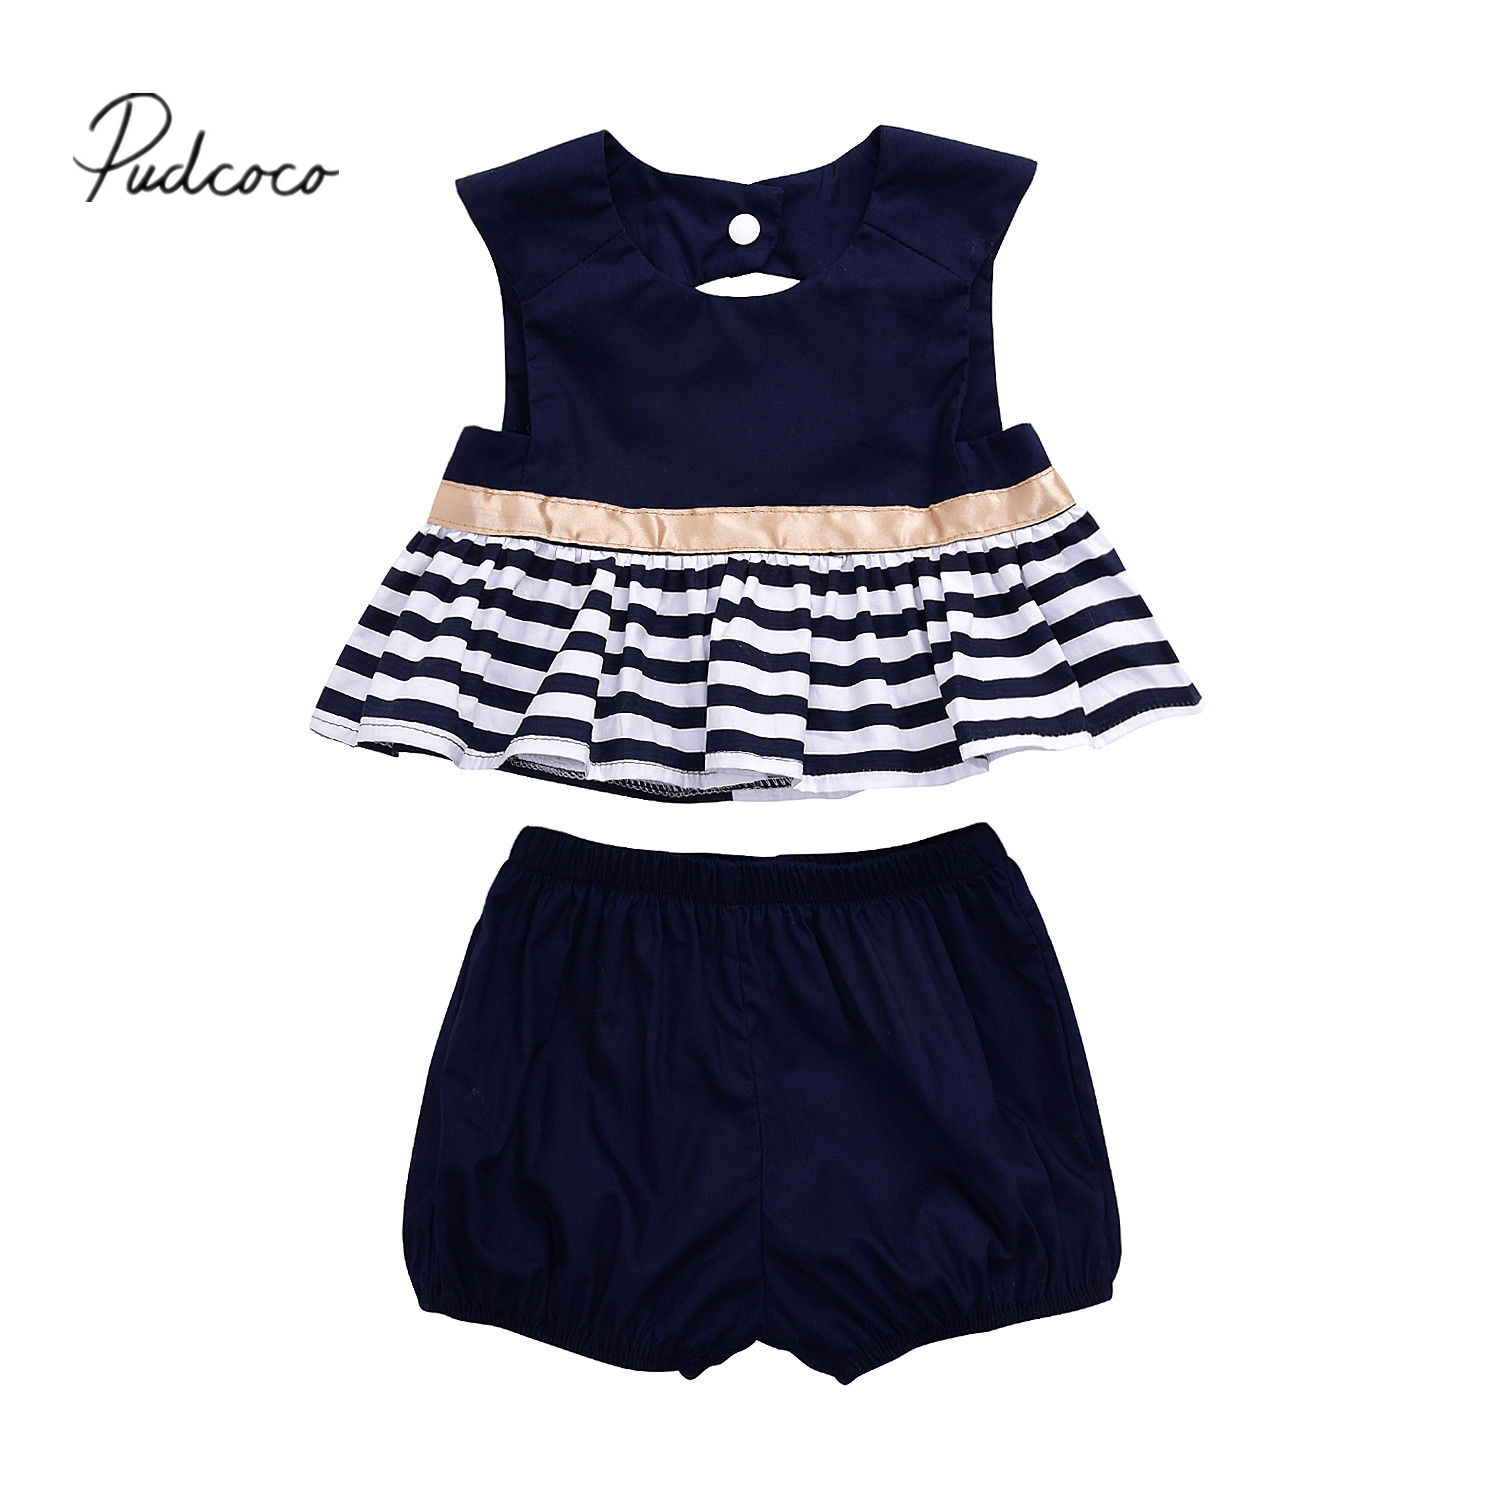 Brand Pudcoco Newborn Kids Baby Girls 2017 Summer Outfit Navy Blue Dress Top+Pants Bloomer 2PCS Bebes Clothes Set 0-18M